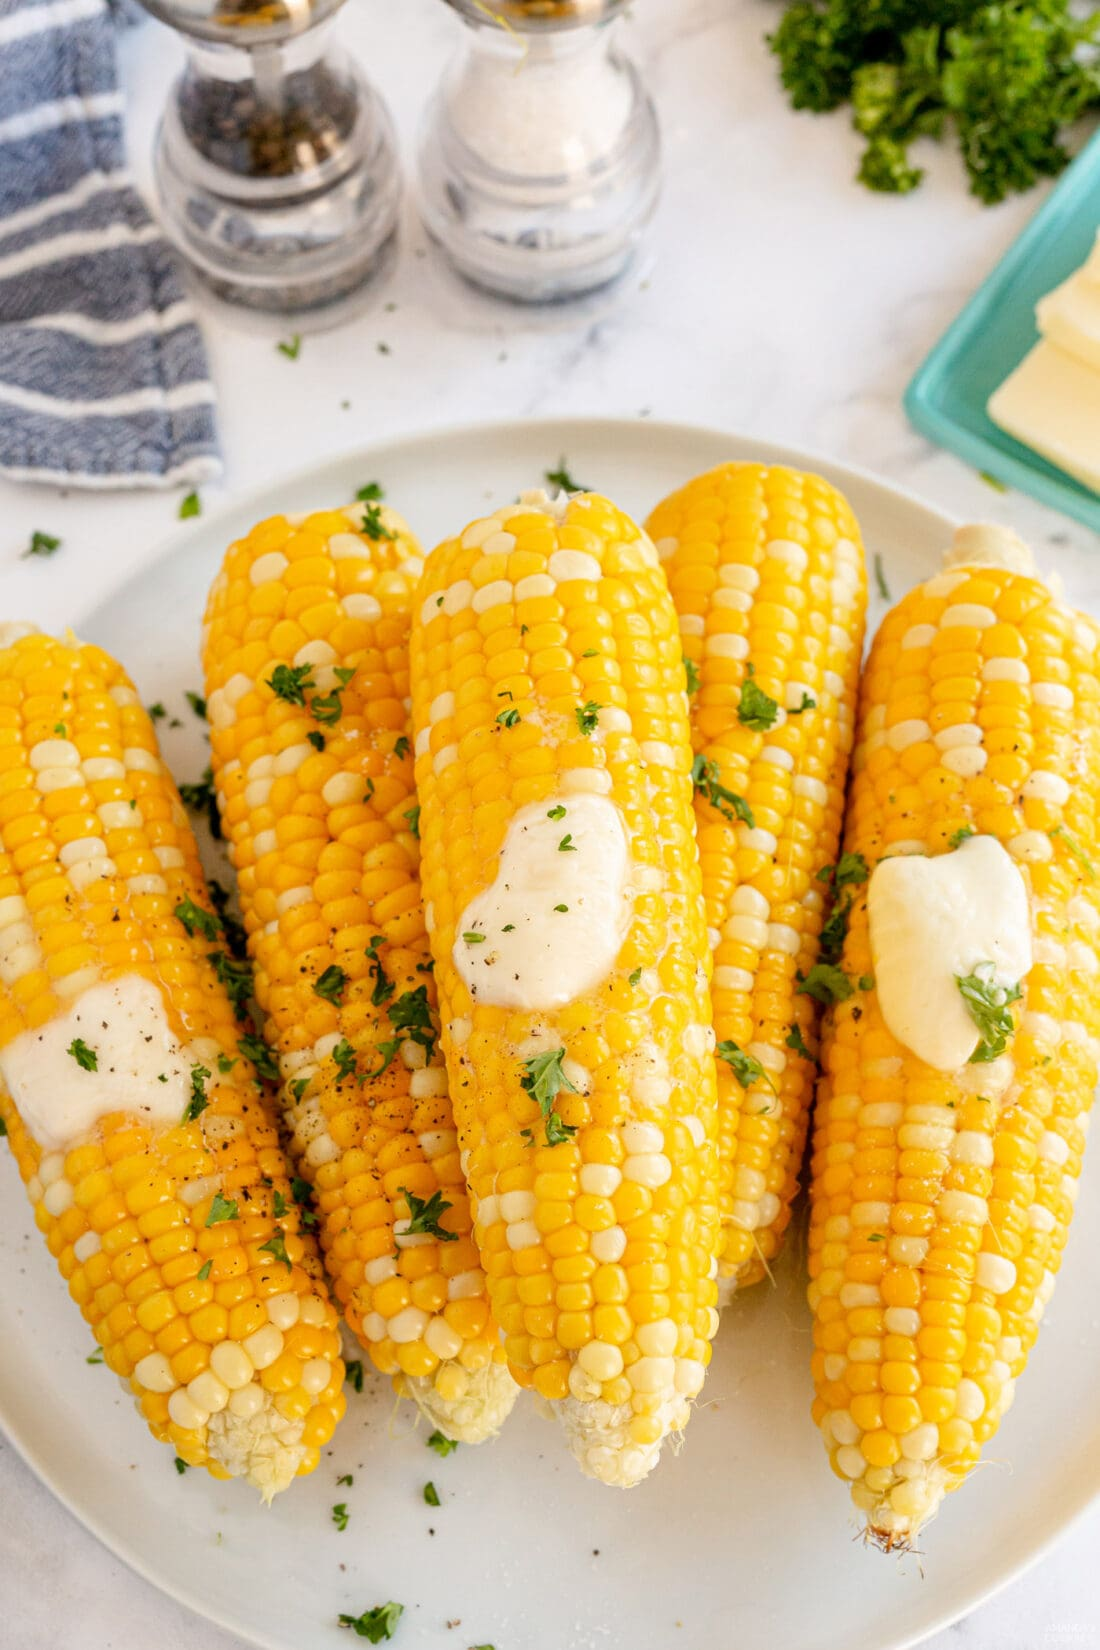 Grilled Corn on the Cob with butter